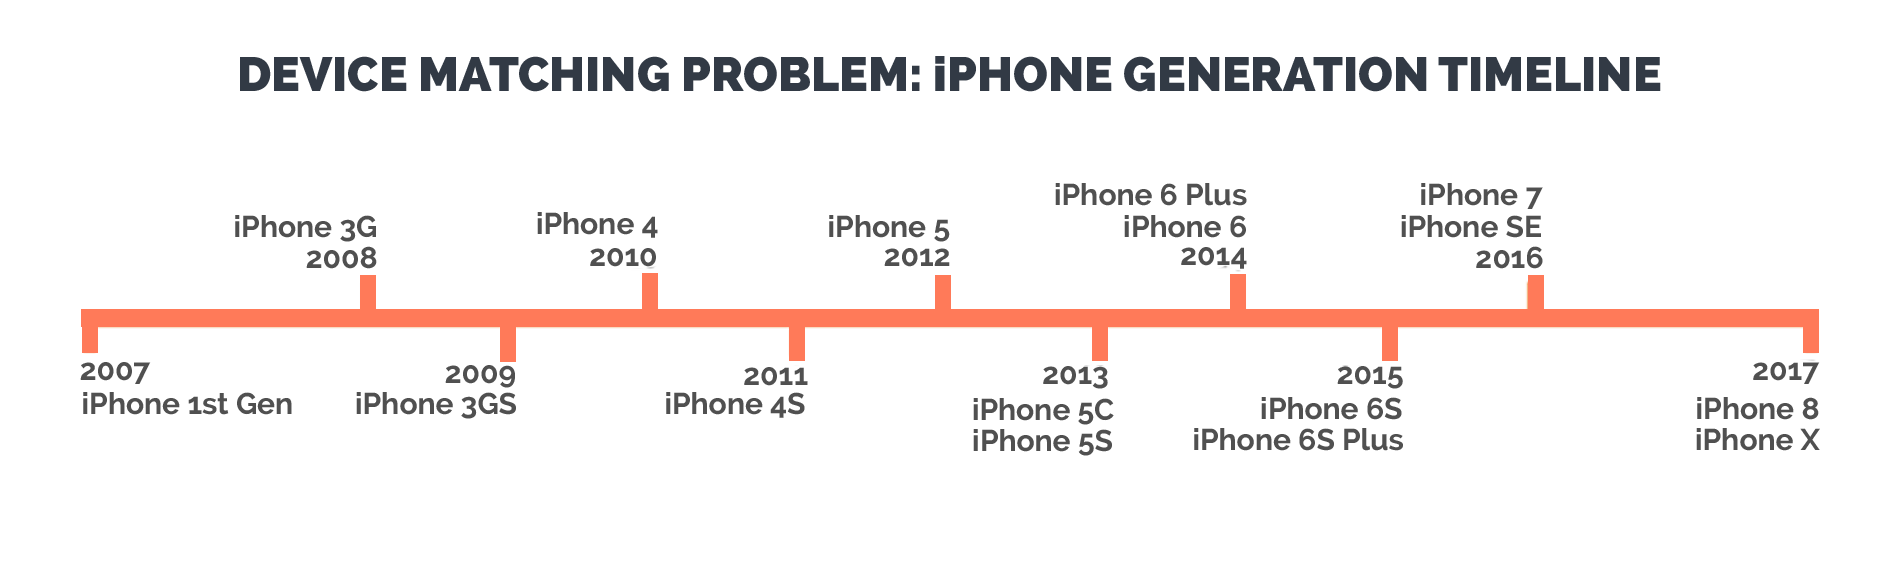 device-matching-problem-iPhone-generation-timeline-graphic.png